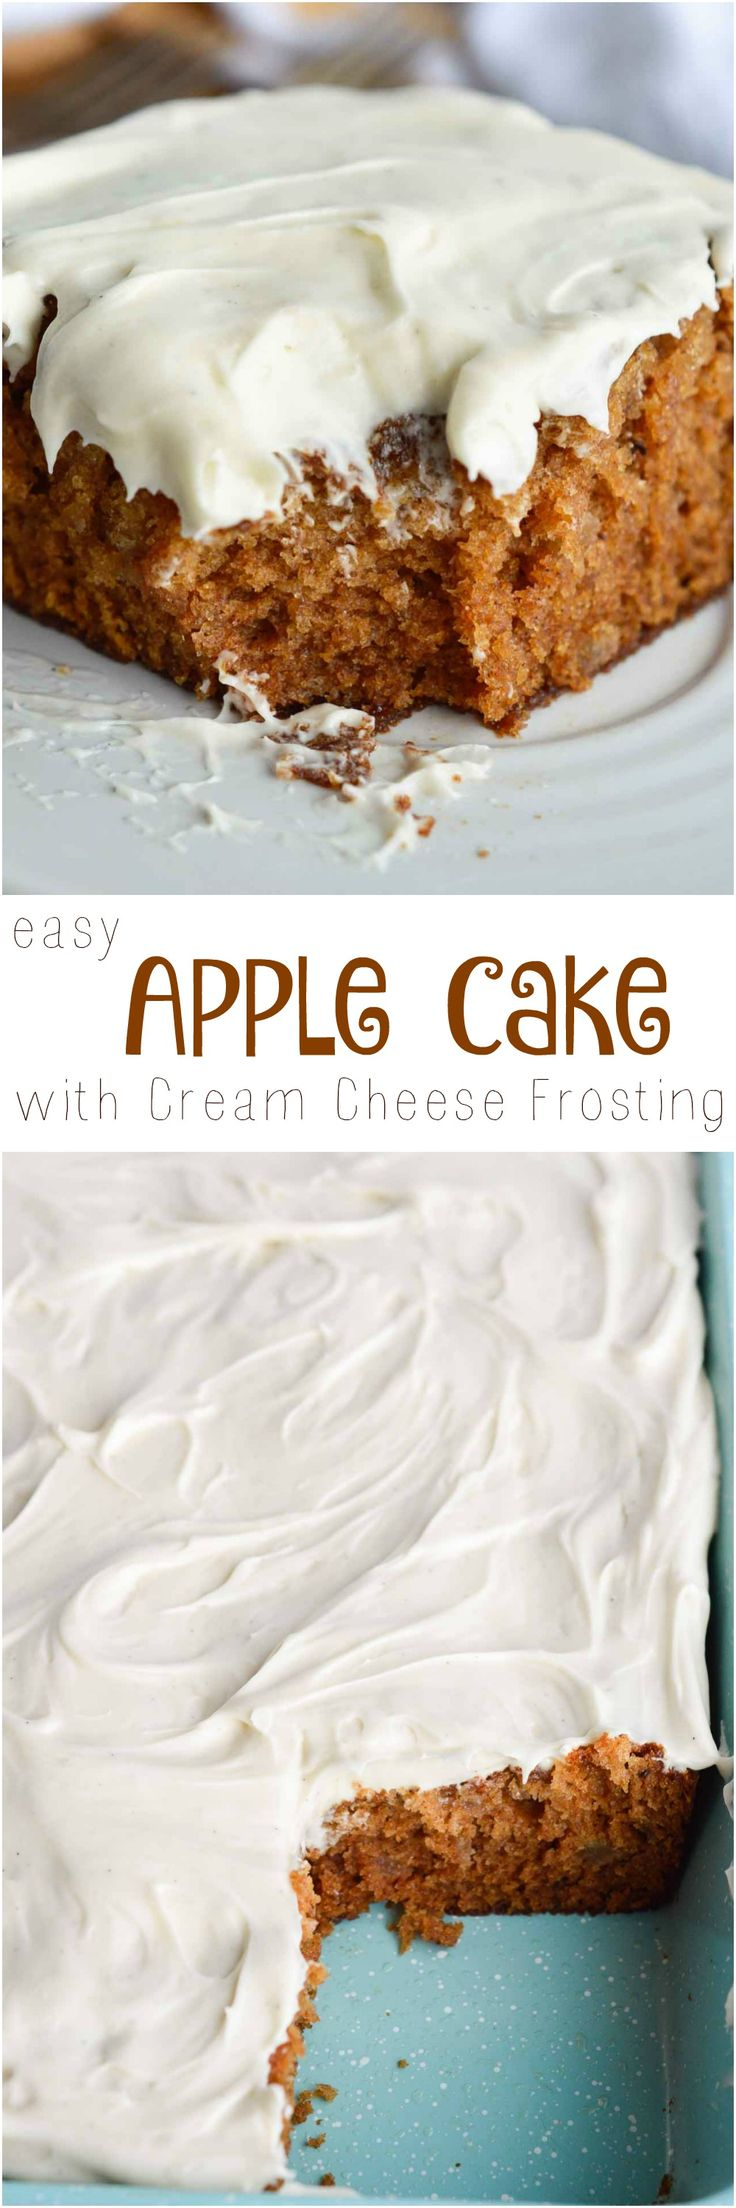 This Easy Apple Cake Recipe is the perfect dessert for feeding a crowd. This apple sheet cake is made with apple pie filling and topped with a luscious vanilla cream cheese frosting. Perfect for holidays, parties, potlucks or brunch!